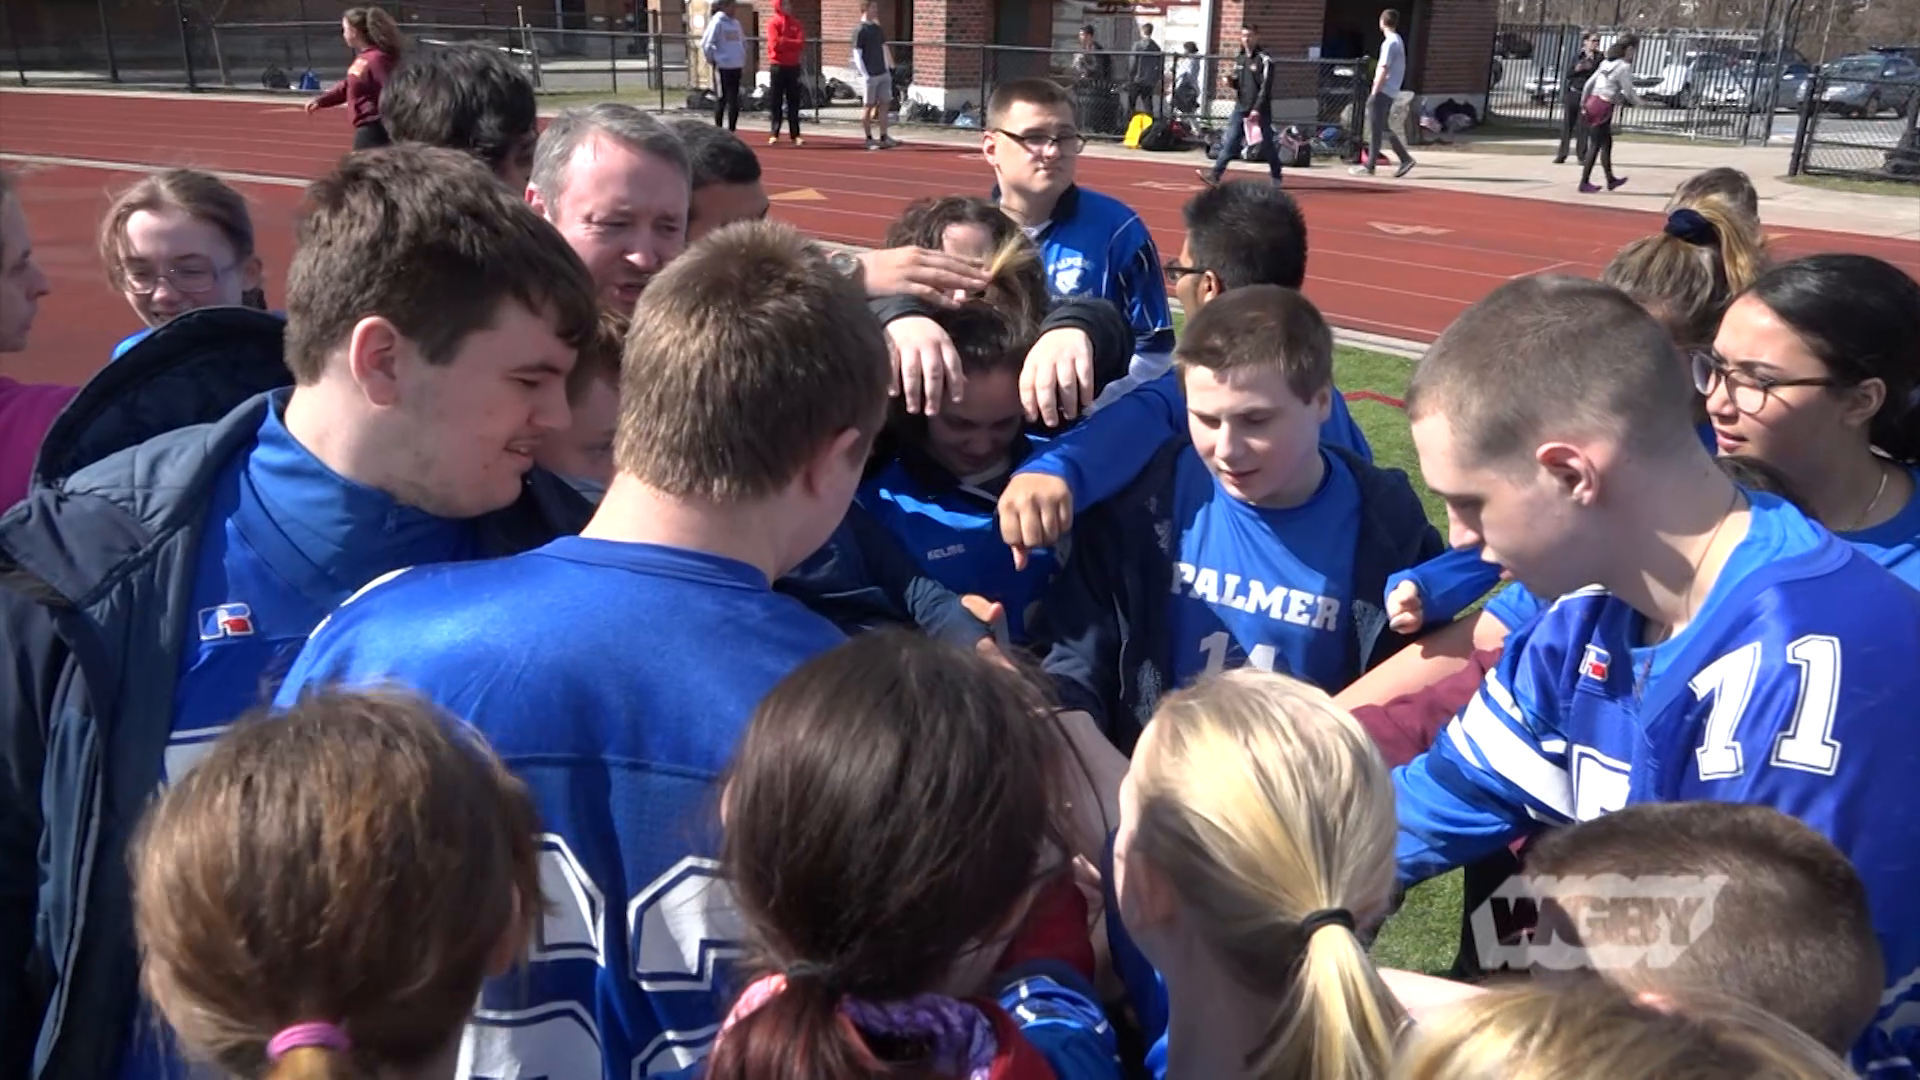 The Palmer Unified Schools program brings together students with and without intellectual disabilities to work together in and out of the classroom